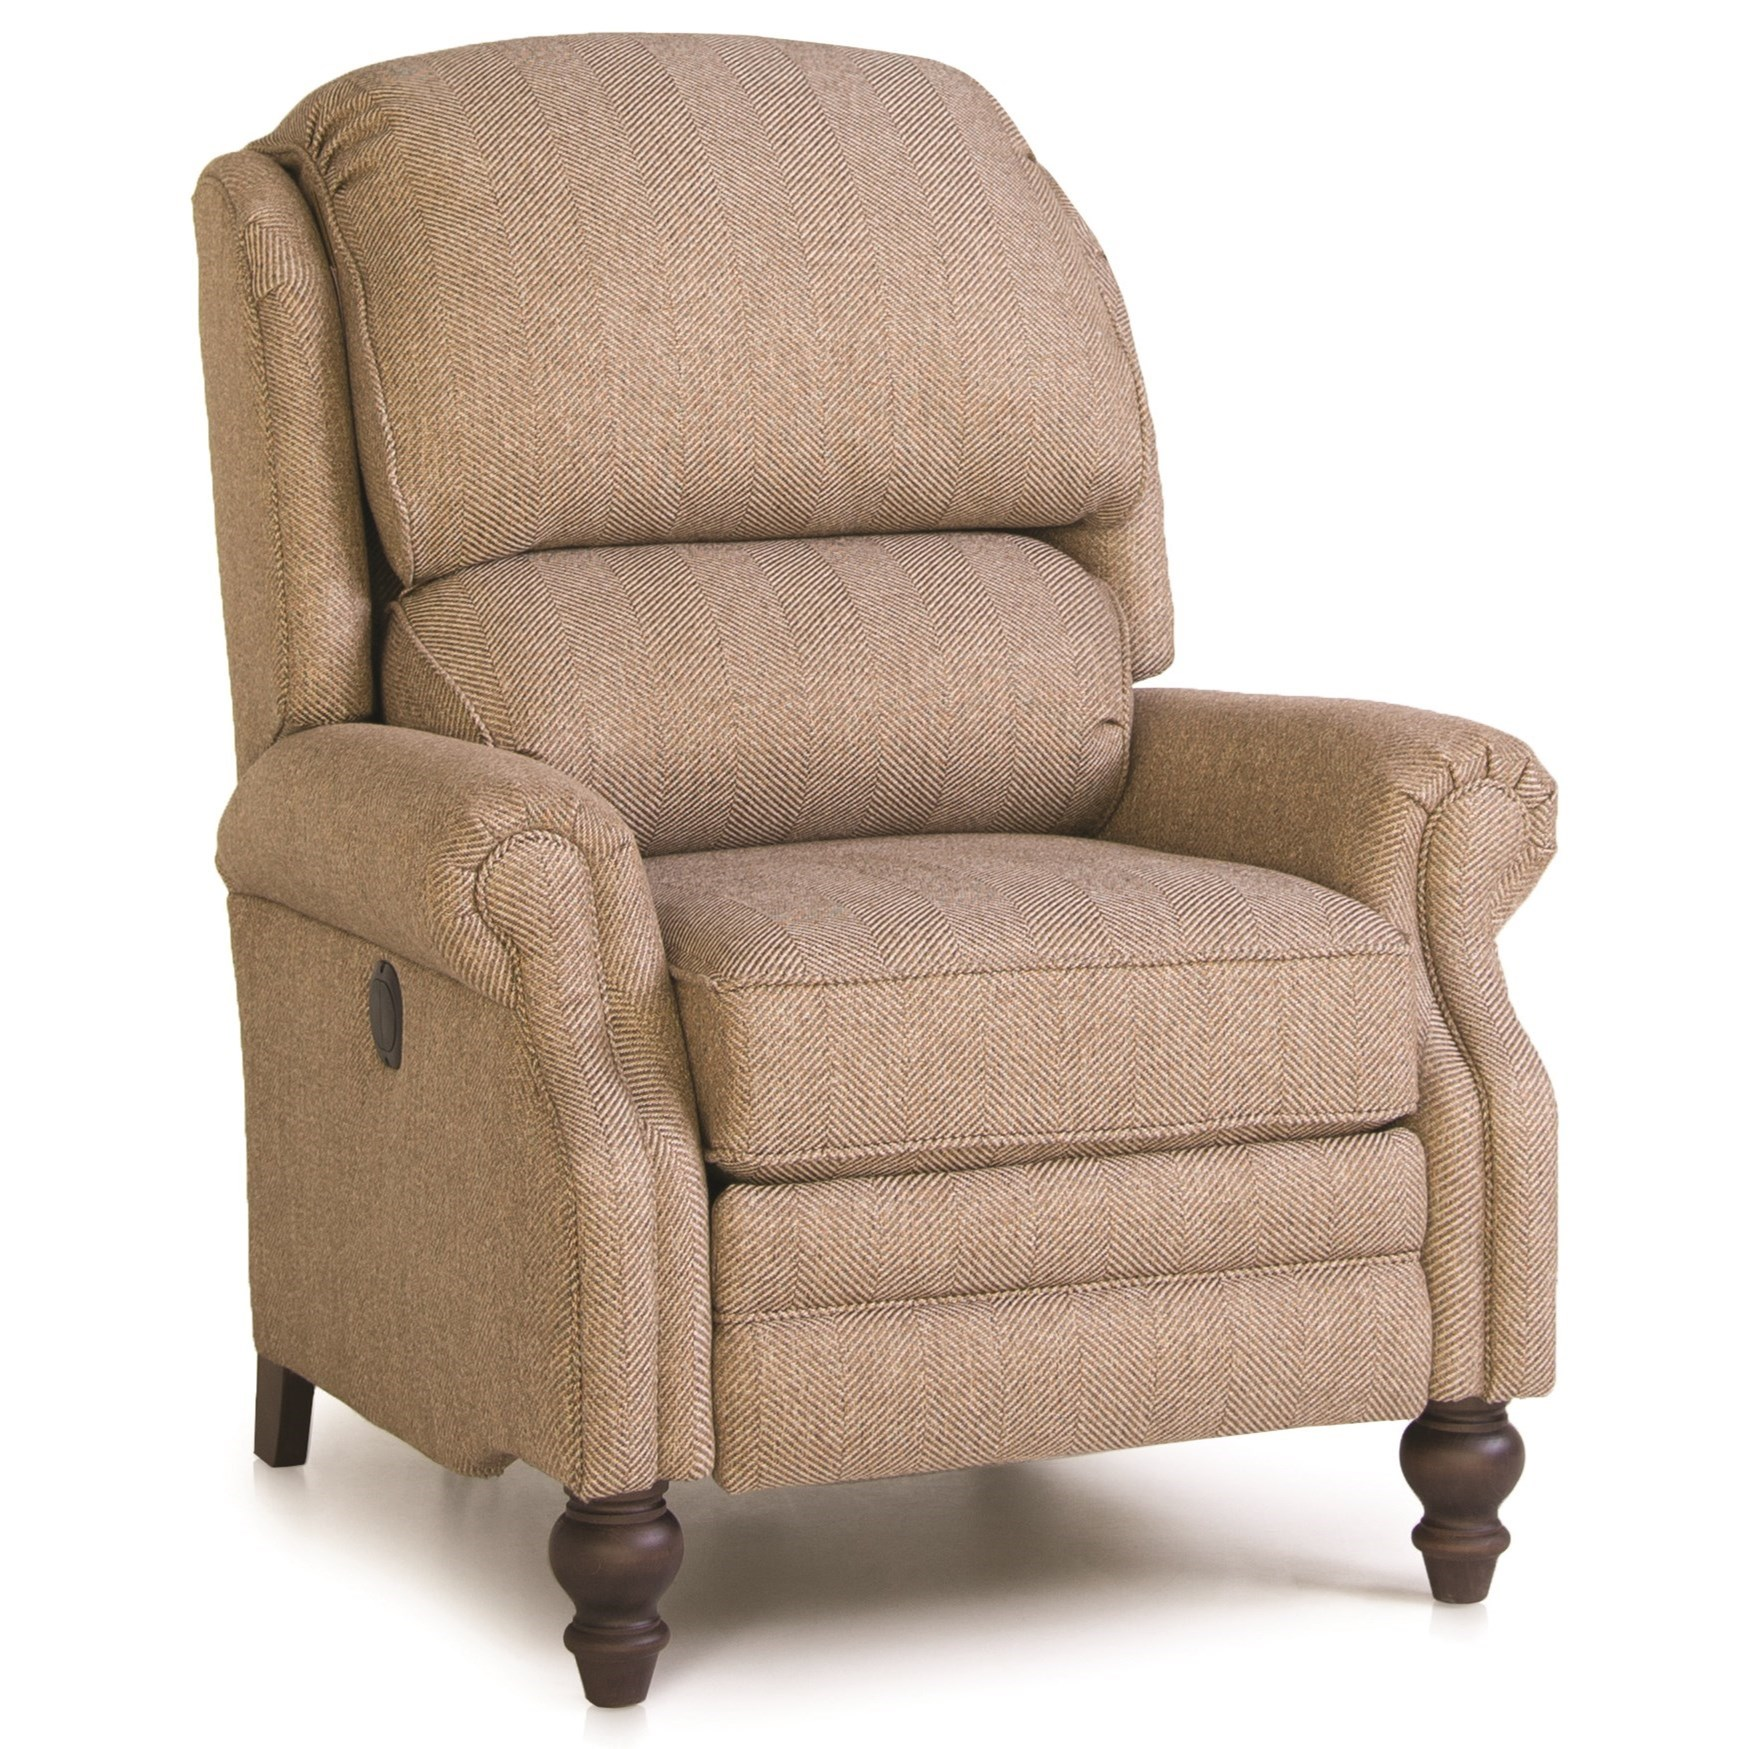 705 Motorized Reclining Chair by Smith Brothers at Pilgrim Furniture City